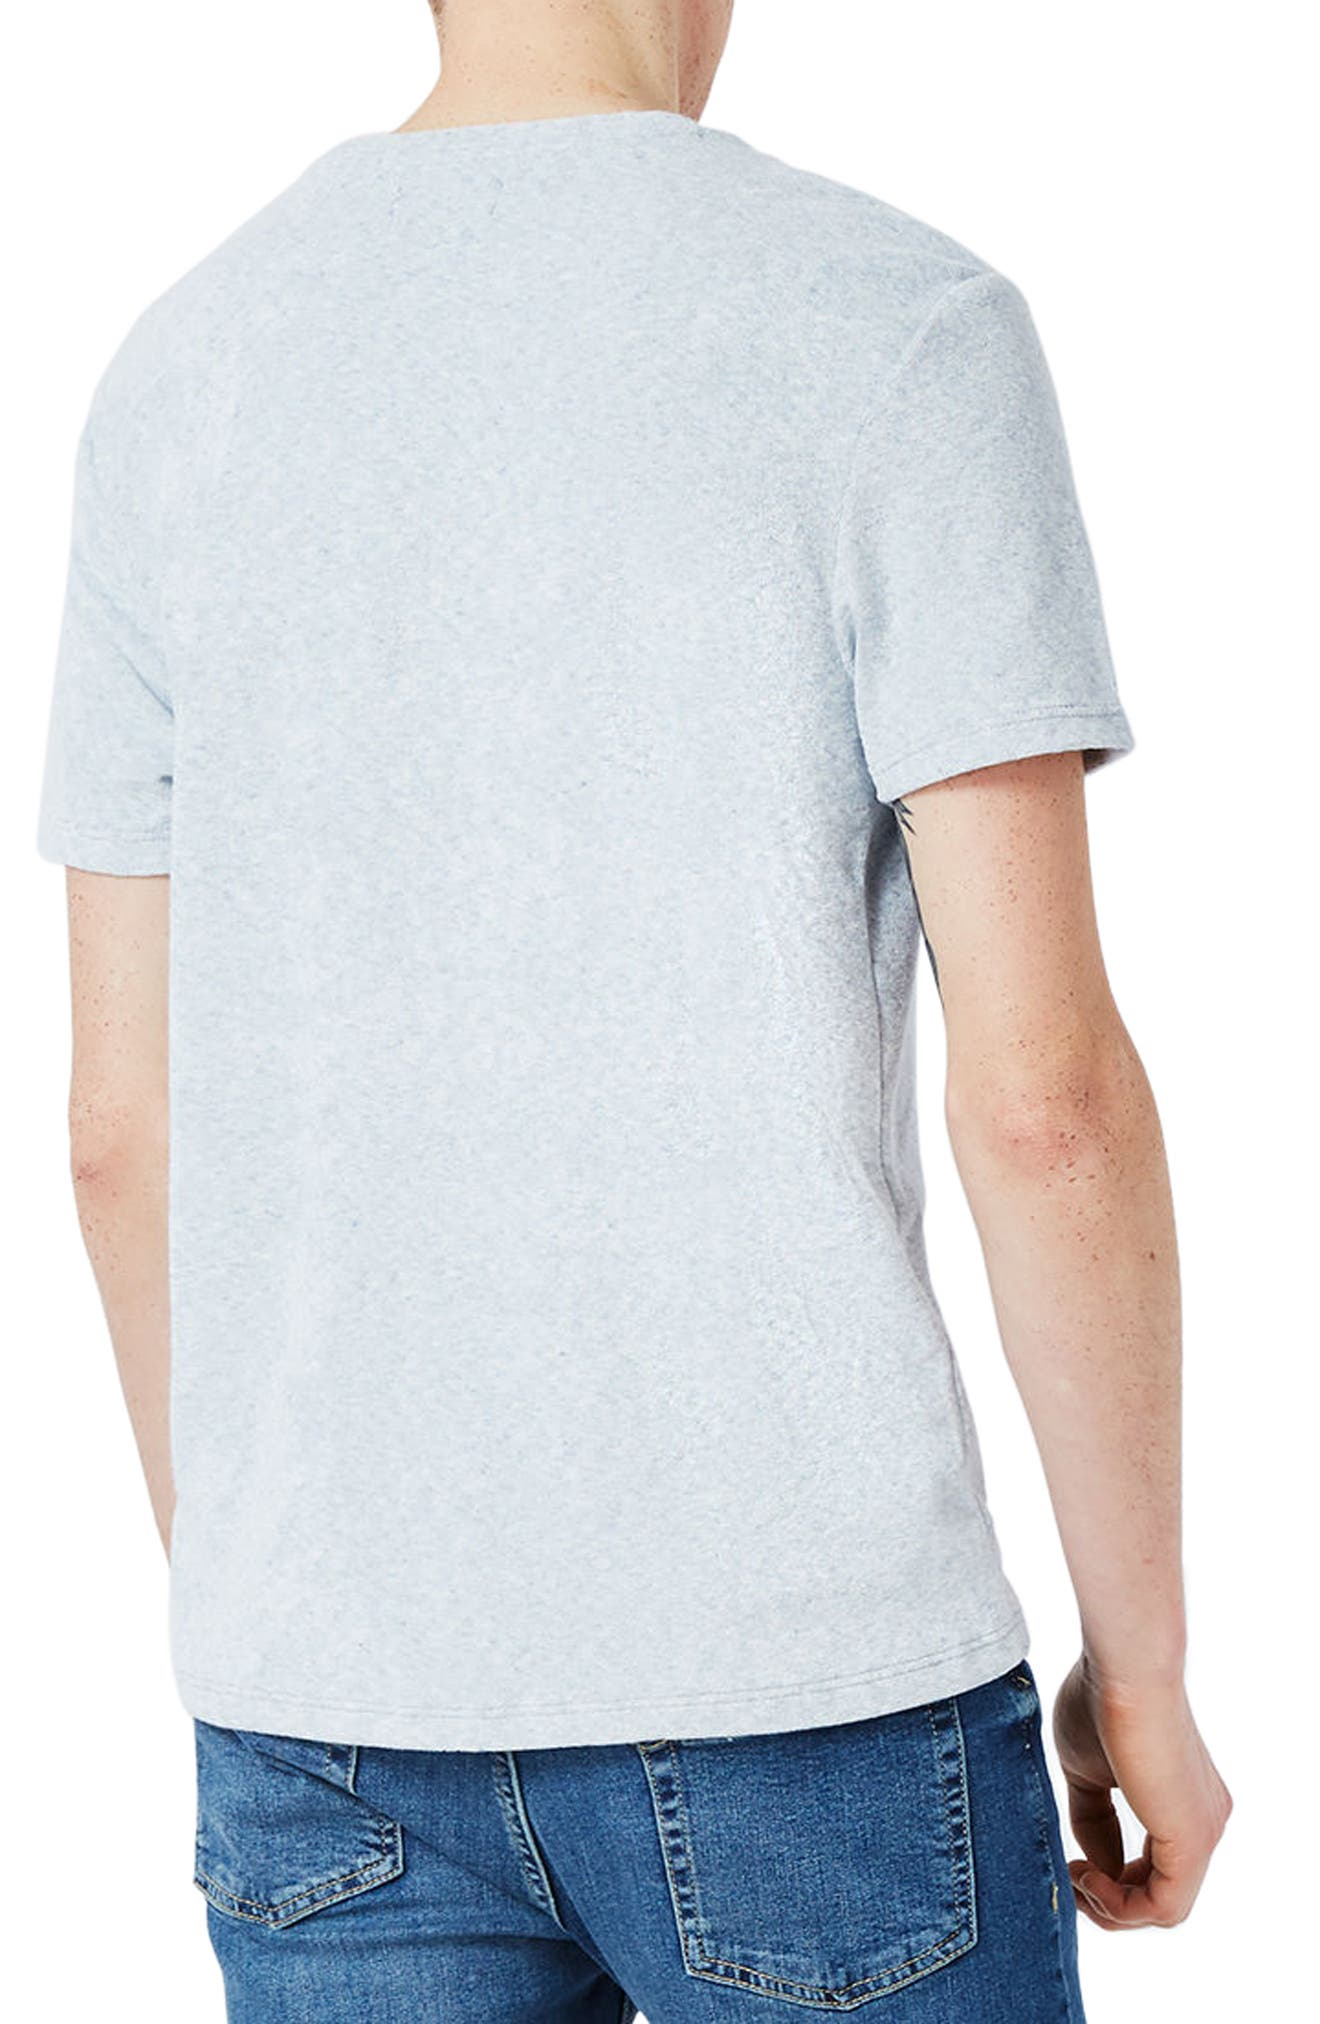 Terry Cloth T-Shirt,                             Alternate thumbnail 2, color,                             020